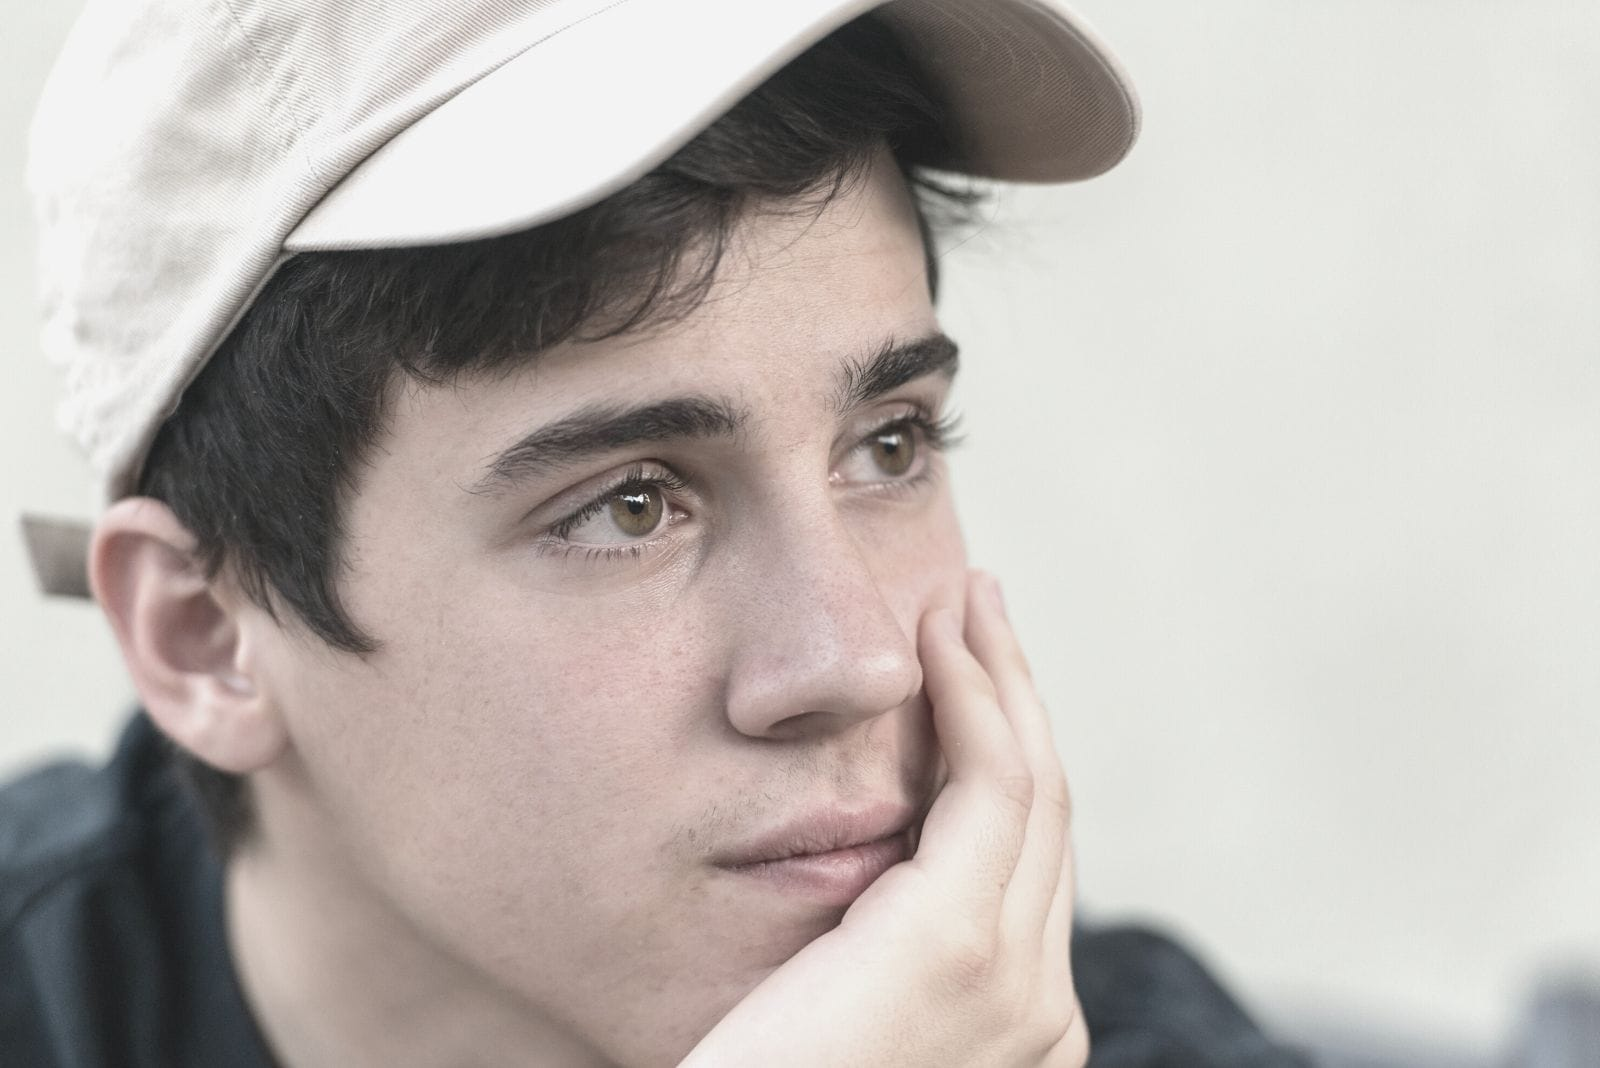 pensive young man looking away wearing a cap